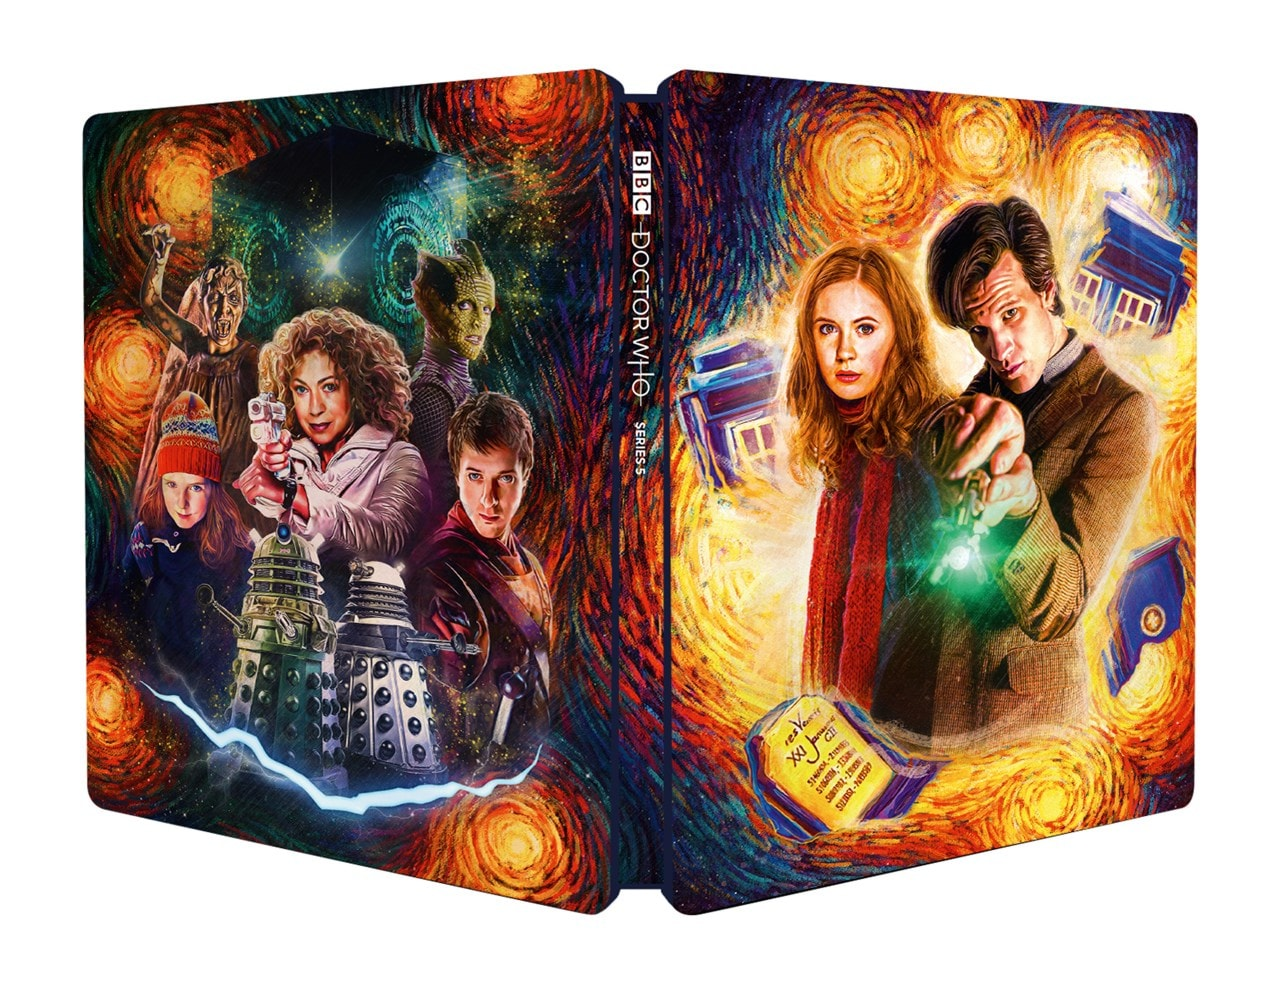 Doctor Who: The Complete Fifth Series - 4